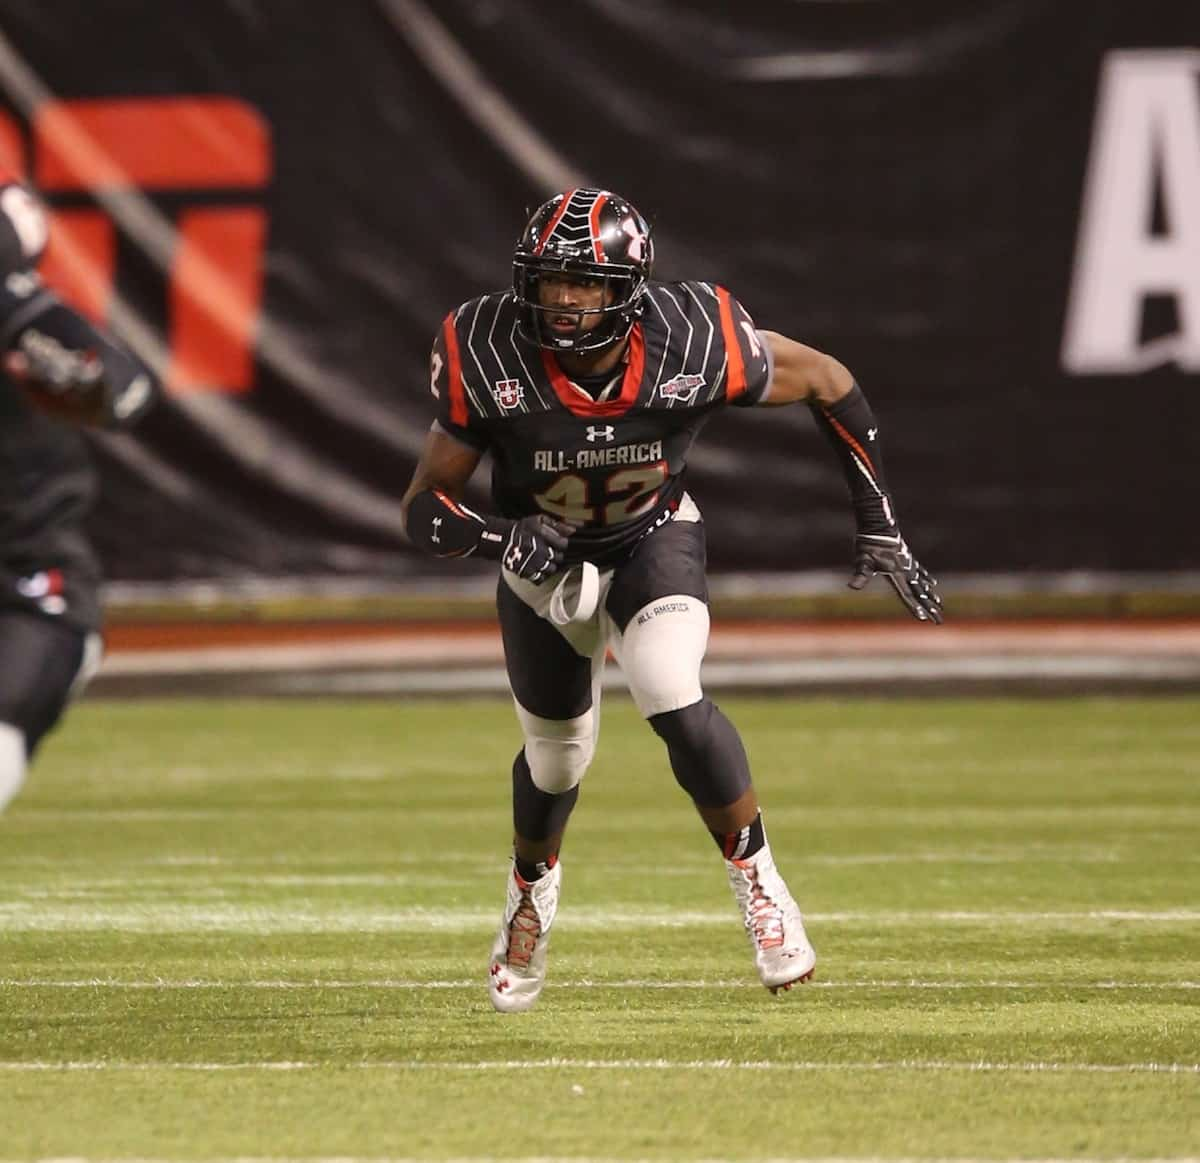 New Florida Gator Keanu Neal at the Under Armour All-American game. \Gator Country photo courtesy of Curtiss Bryant.